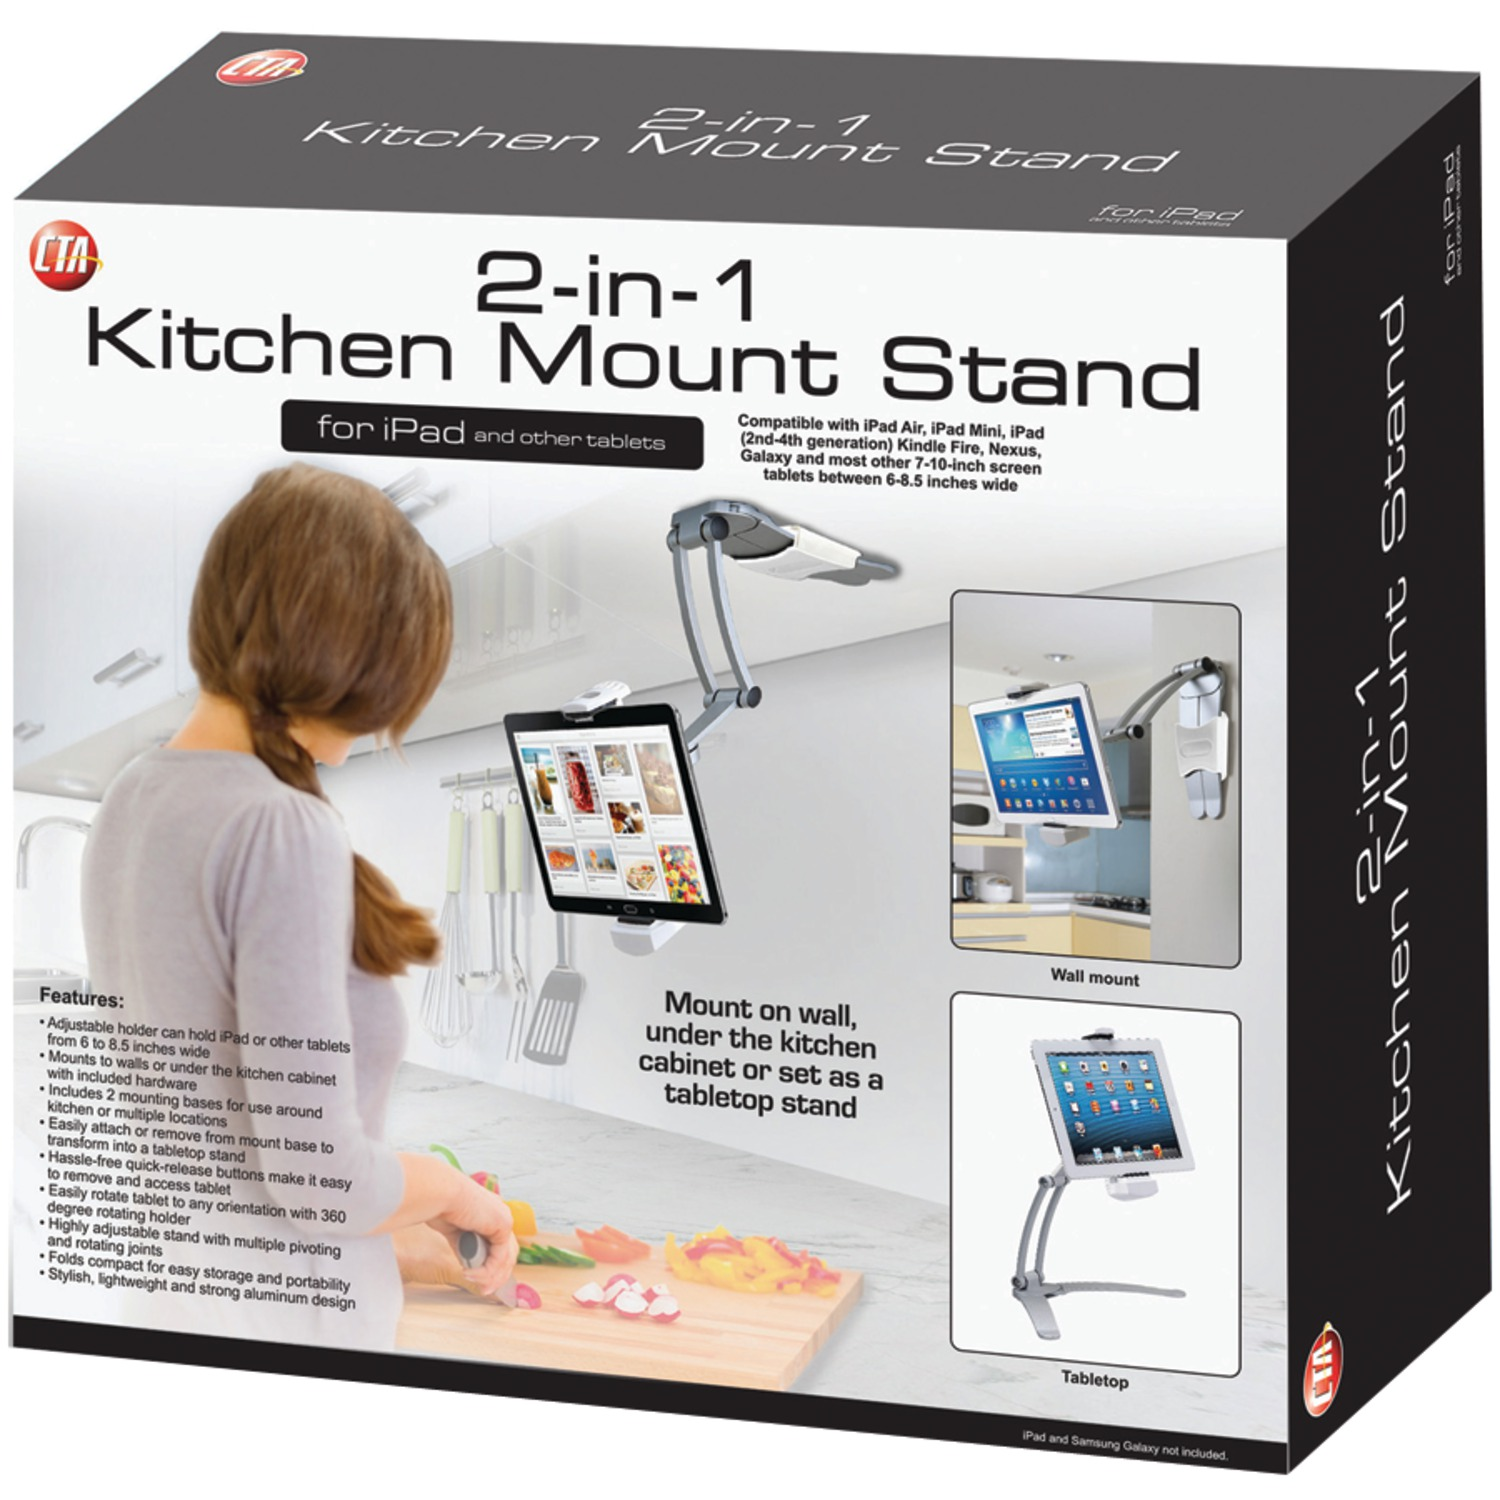 CTA Digital PAD-KMS 2-in-1 Kitchen Mount Stand for iPad/Tablet - Walmart.com  sc 1 st  Walmart & CTA Digital PAD-KMS 2-in-1 Kitchen Mount Stand for iPad/Tablet ...